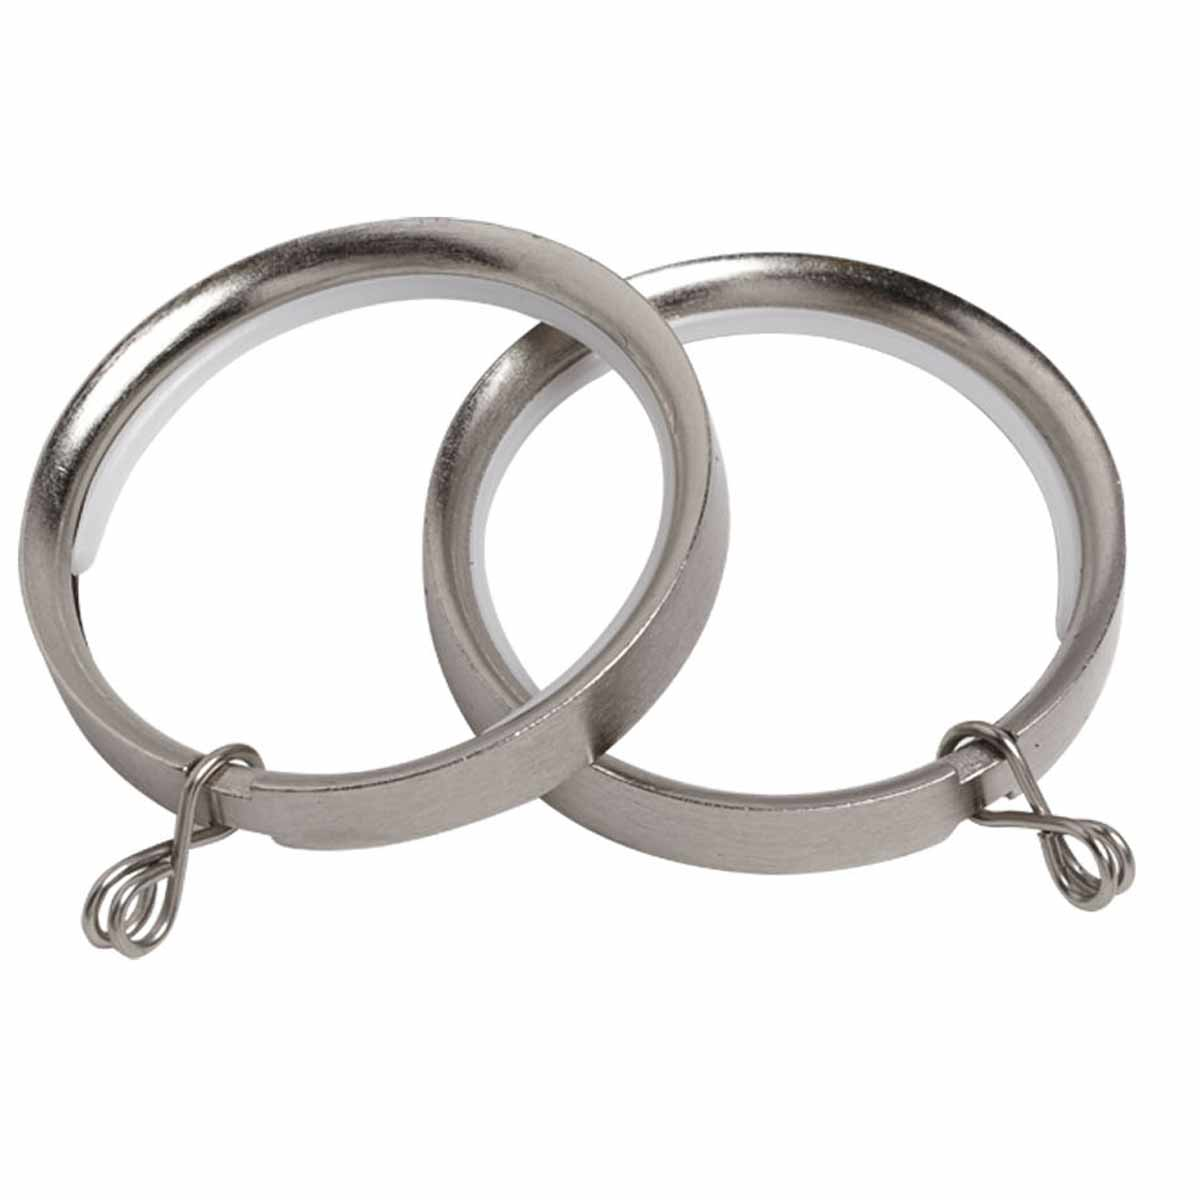 Bargain Satin Silver Poles Apart Rings Stockists